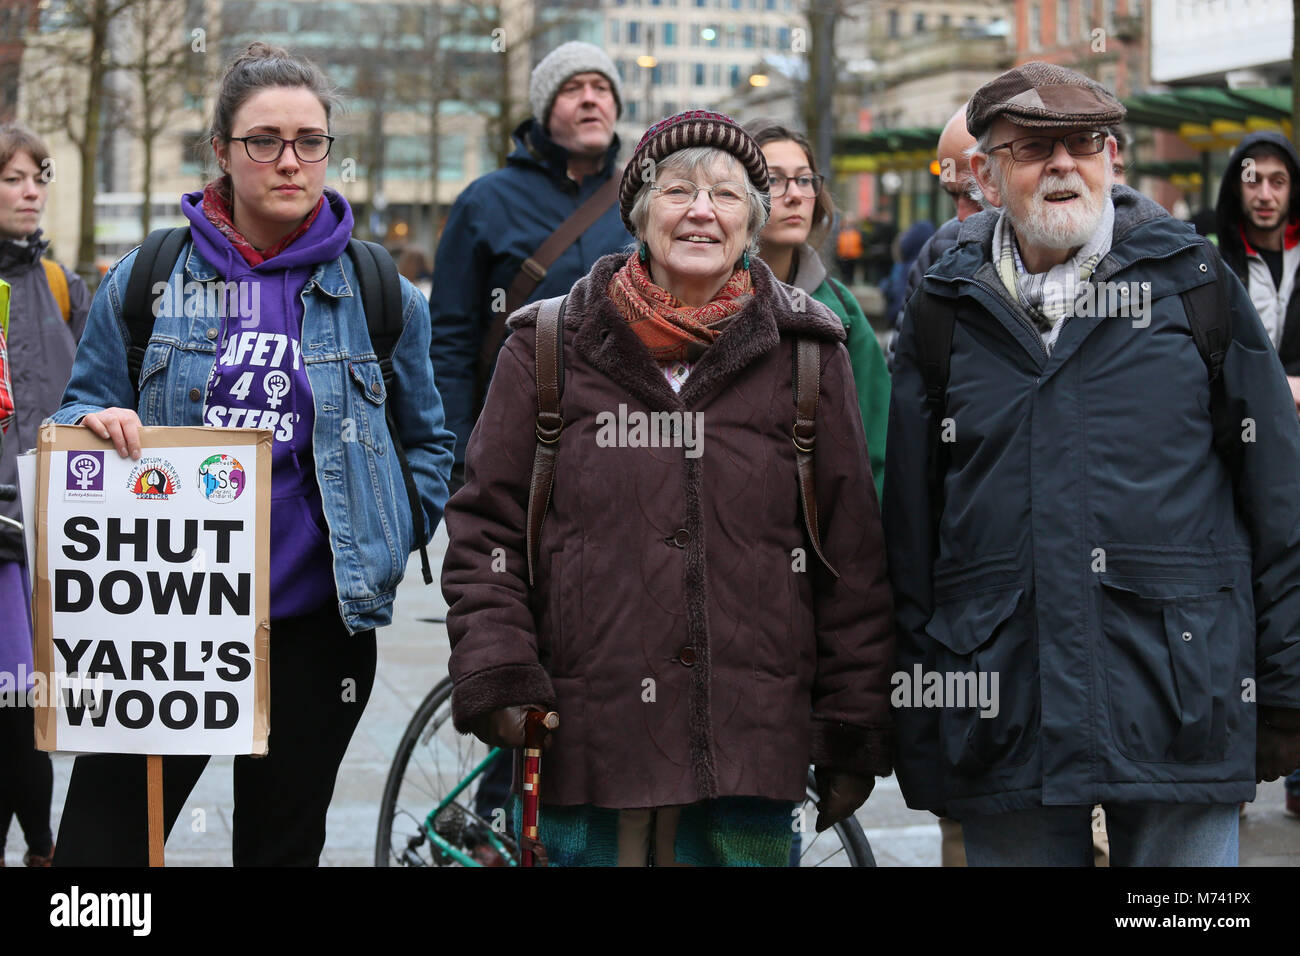 Yarlswood, Manchester. 8th Mar, 2018. On International Women's Day a vigil takes place to show support for men - Stock Image